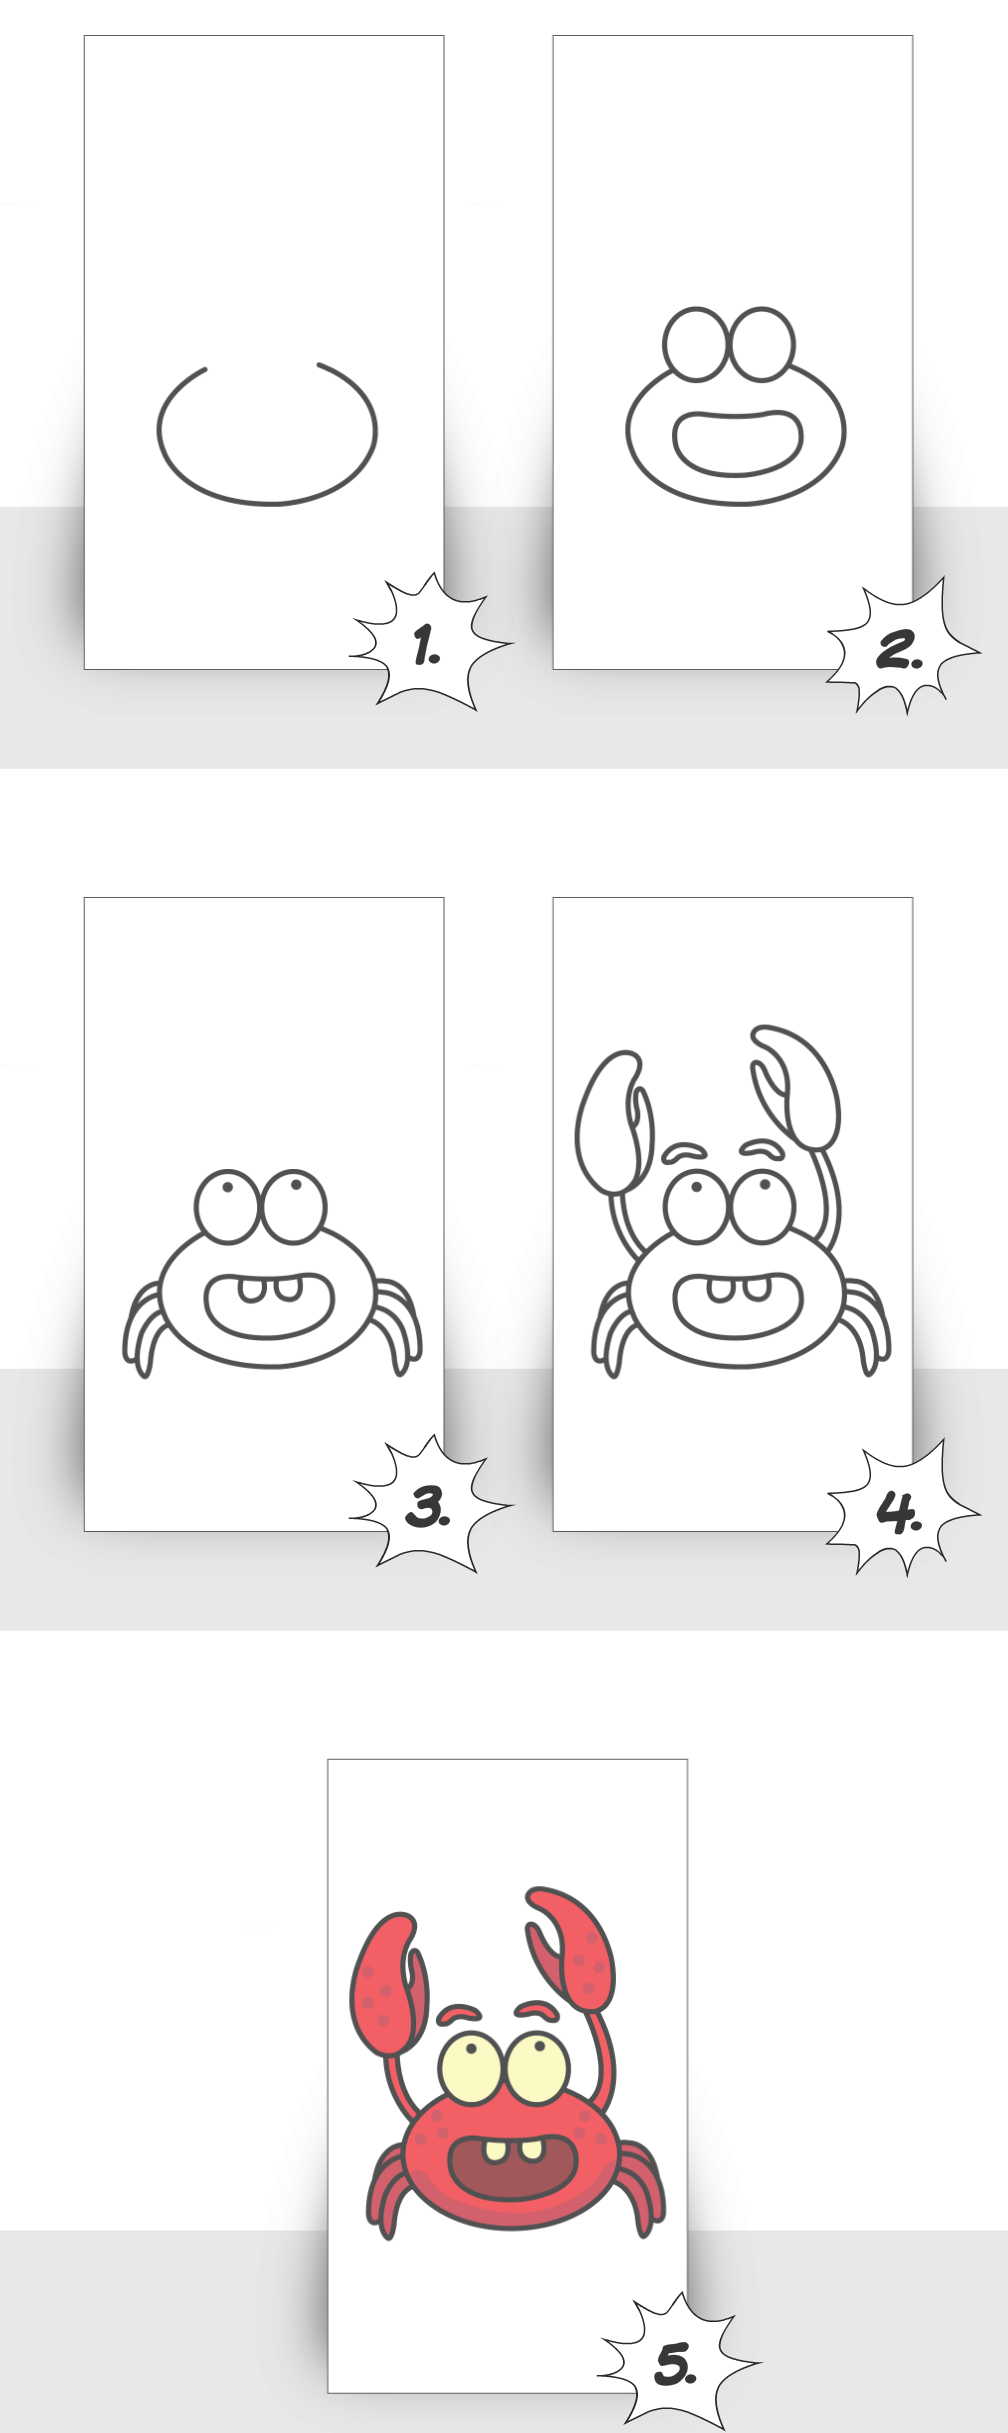 How to Draw a Crab Step by Step for Kids